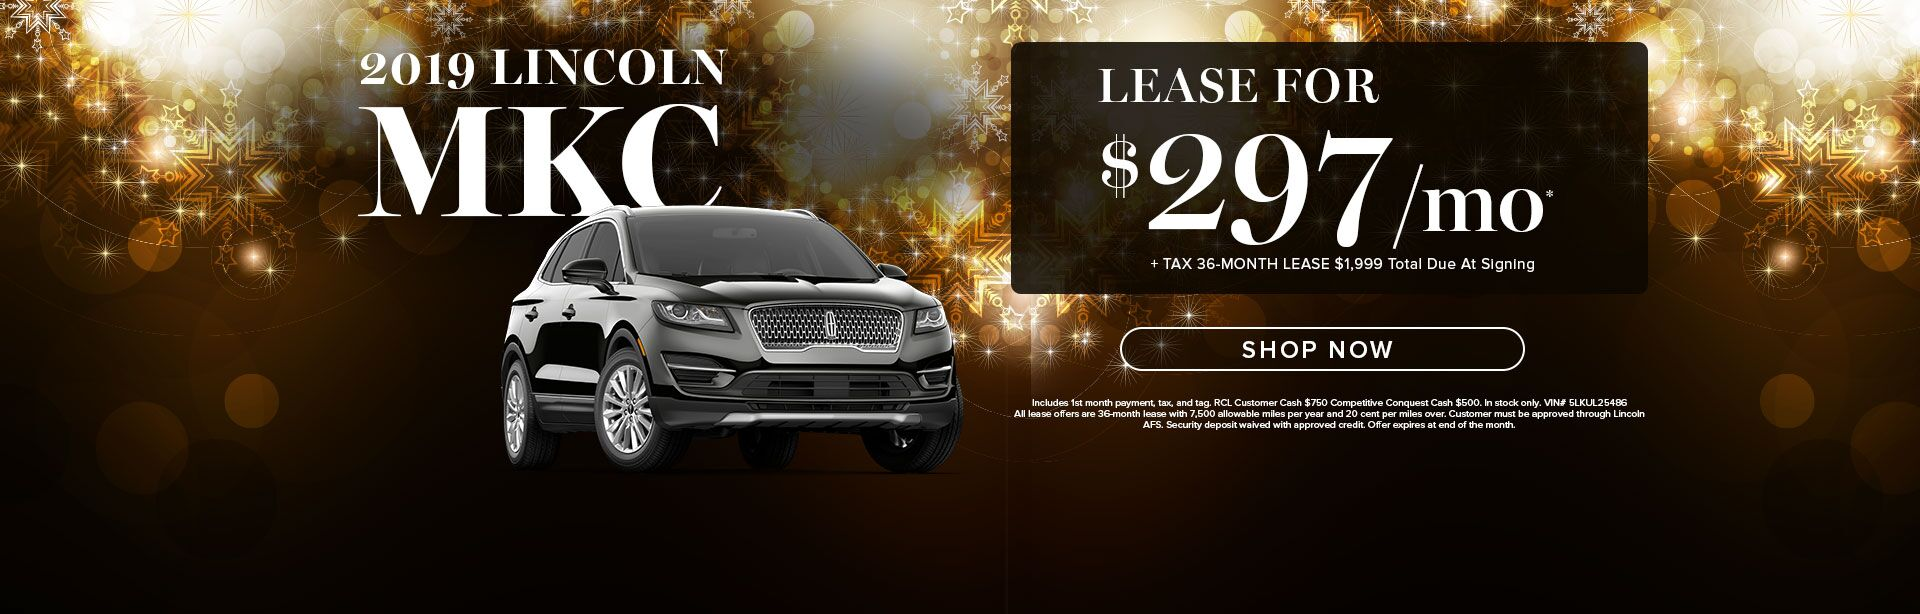 2019 Lincoln MKC lease special